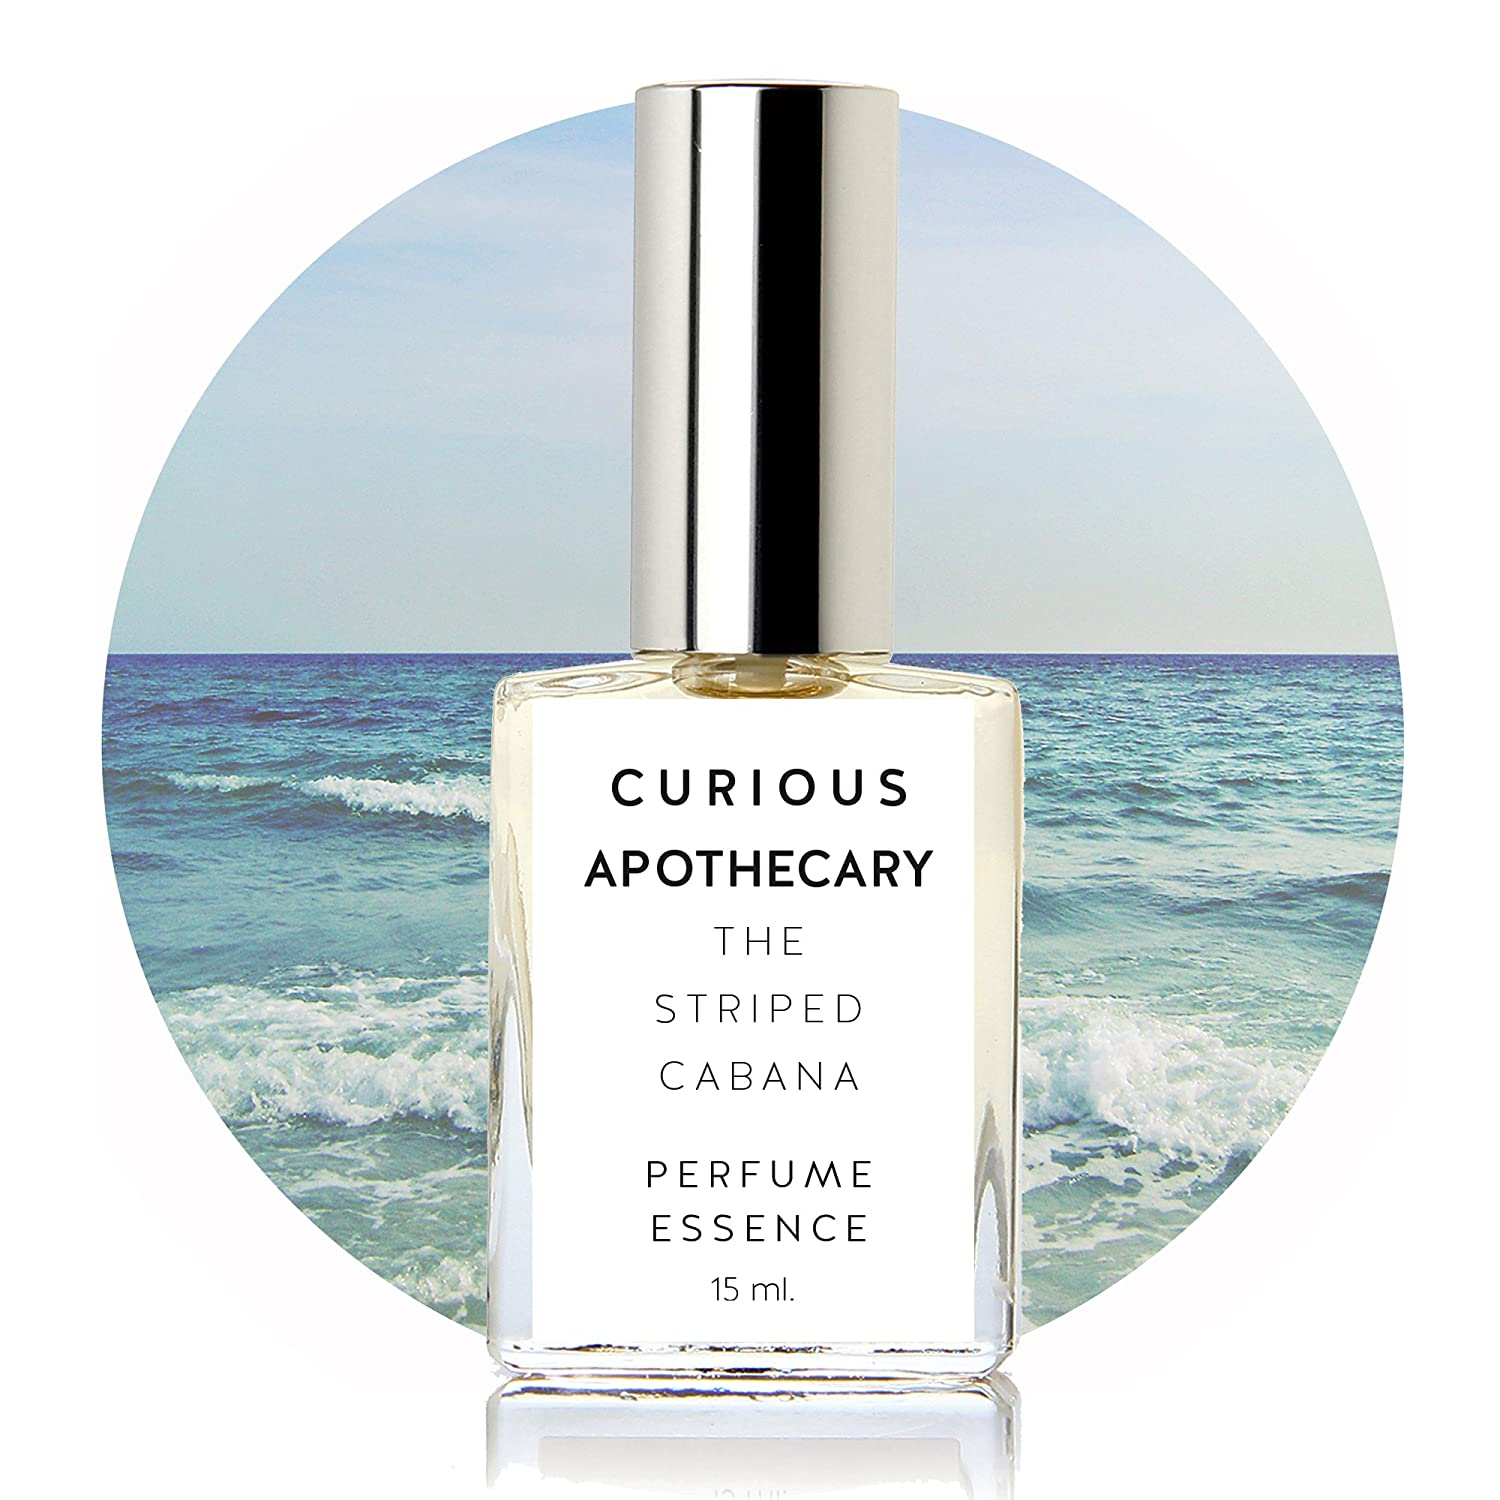 Curious Apothecary The Striped Cabana Coconut Milk Tropical Floral perfume for women. Inspired sophisticated beach women's fragrance 15 ml